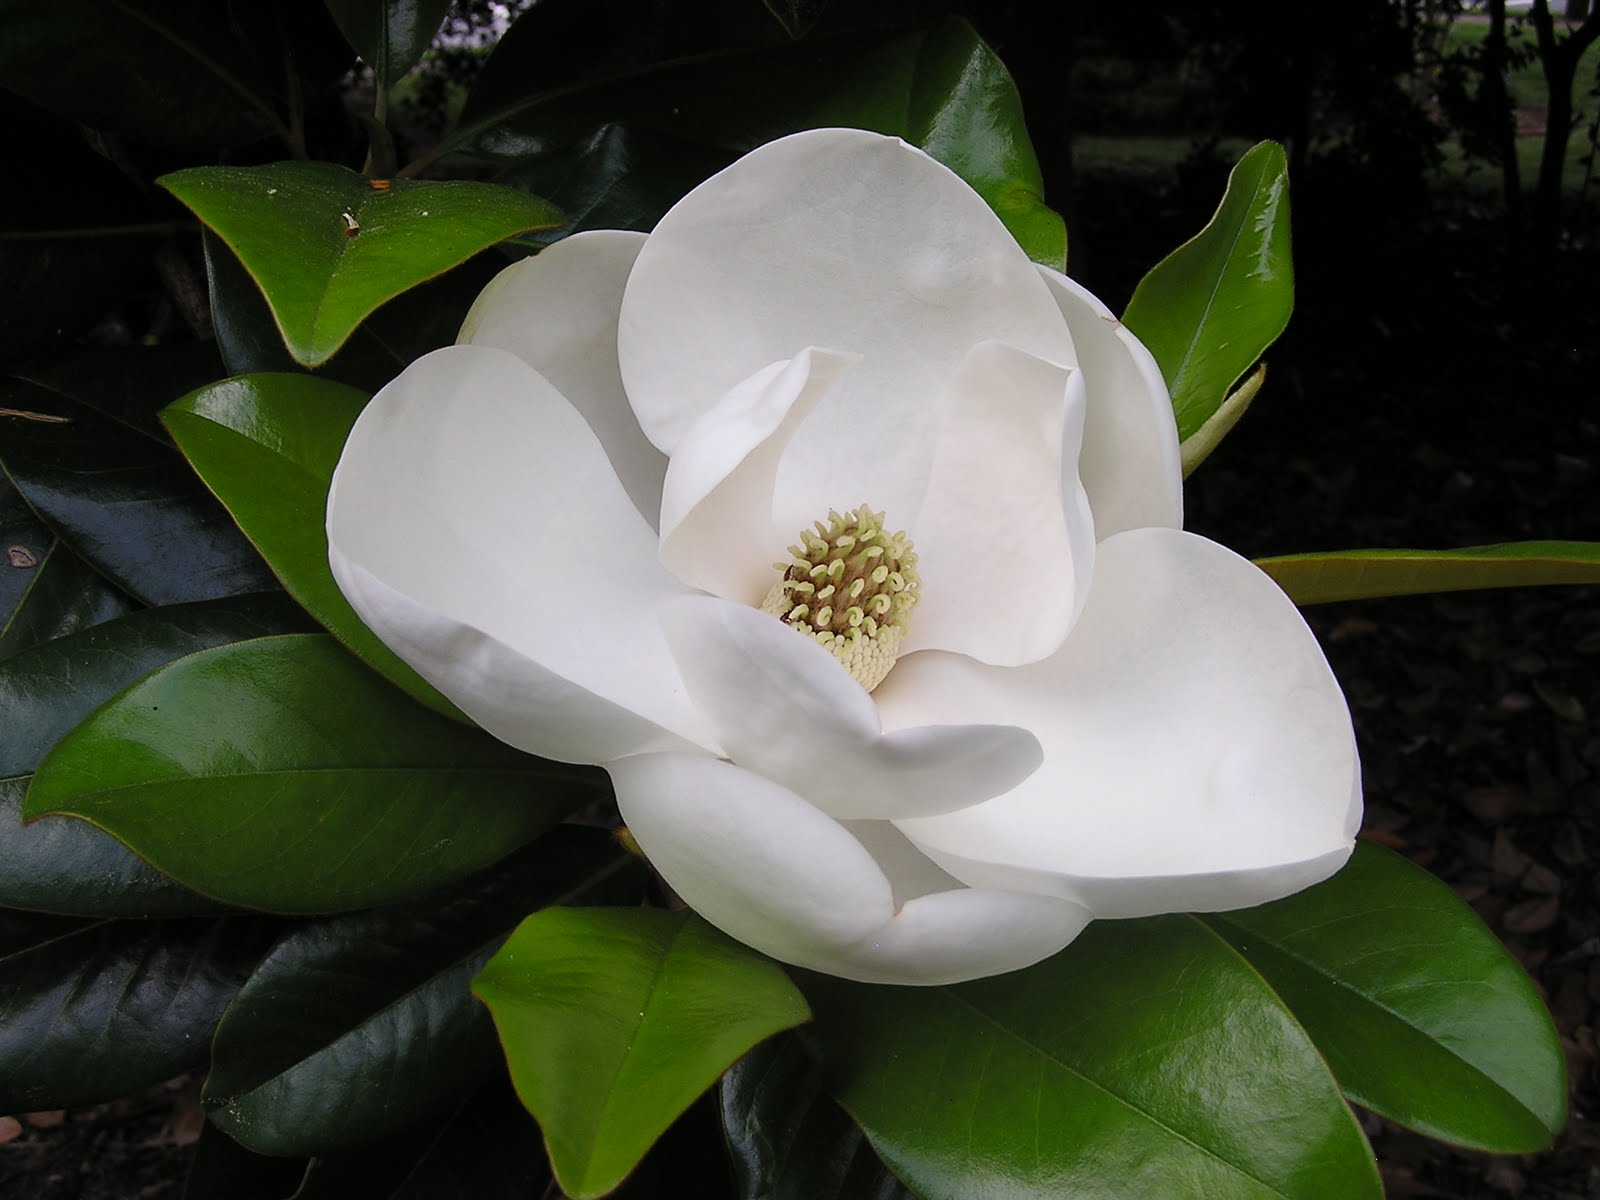 Magnolia Flowering Plant 73.82 Kb